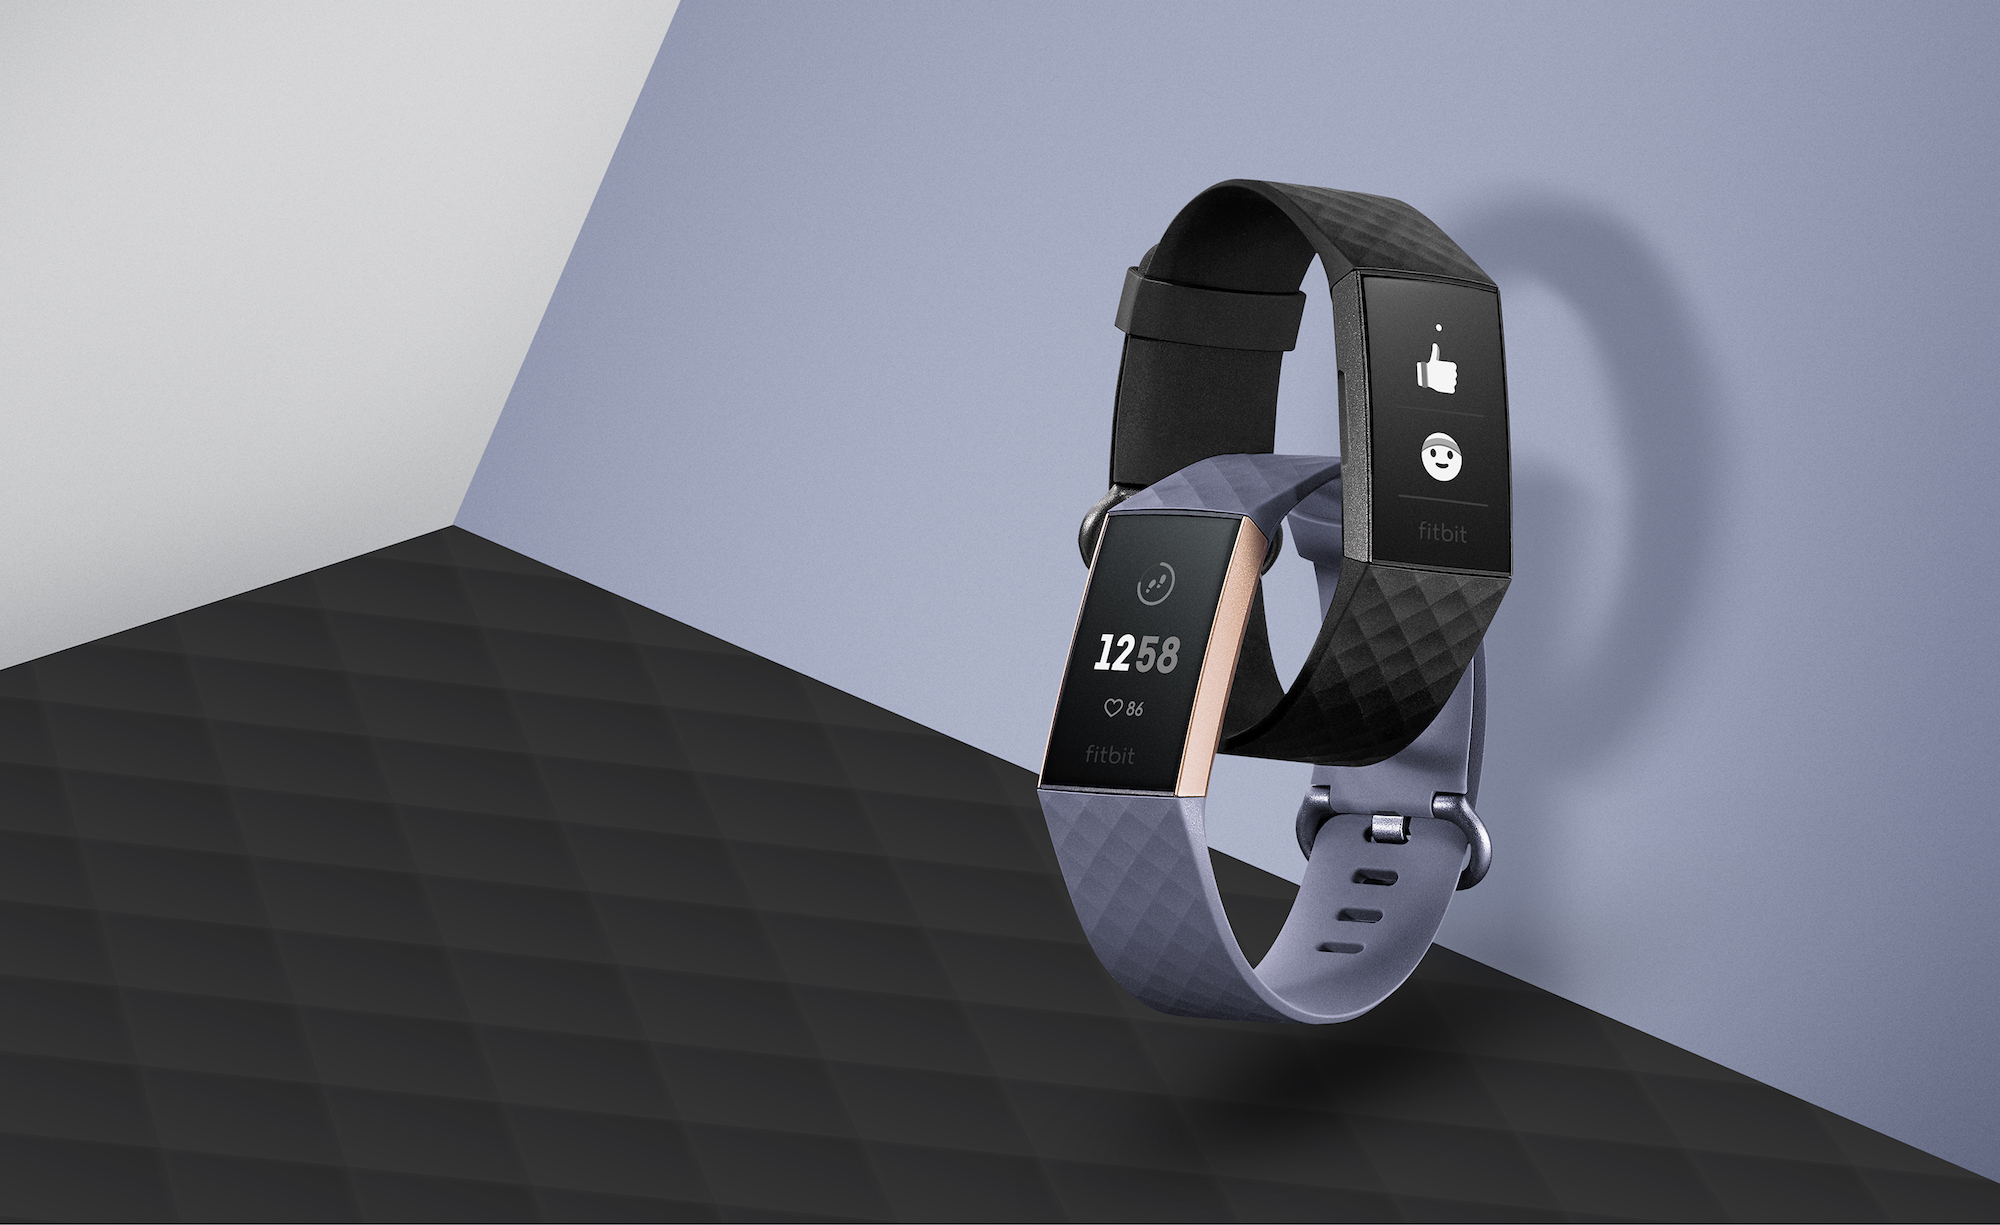 fitbit smartwatch with fitness tracker